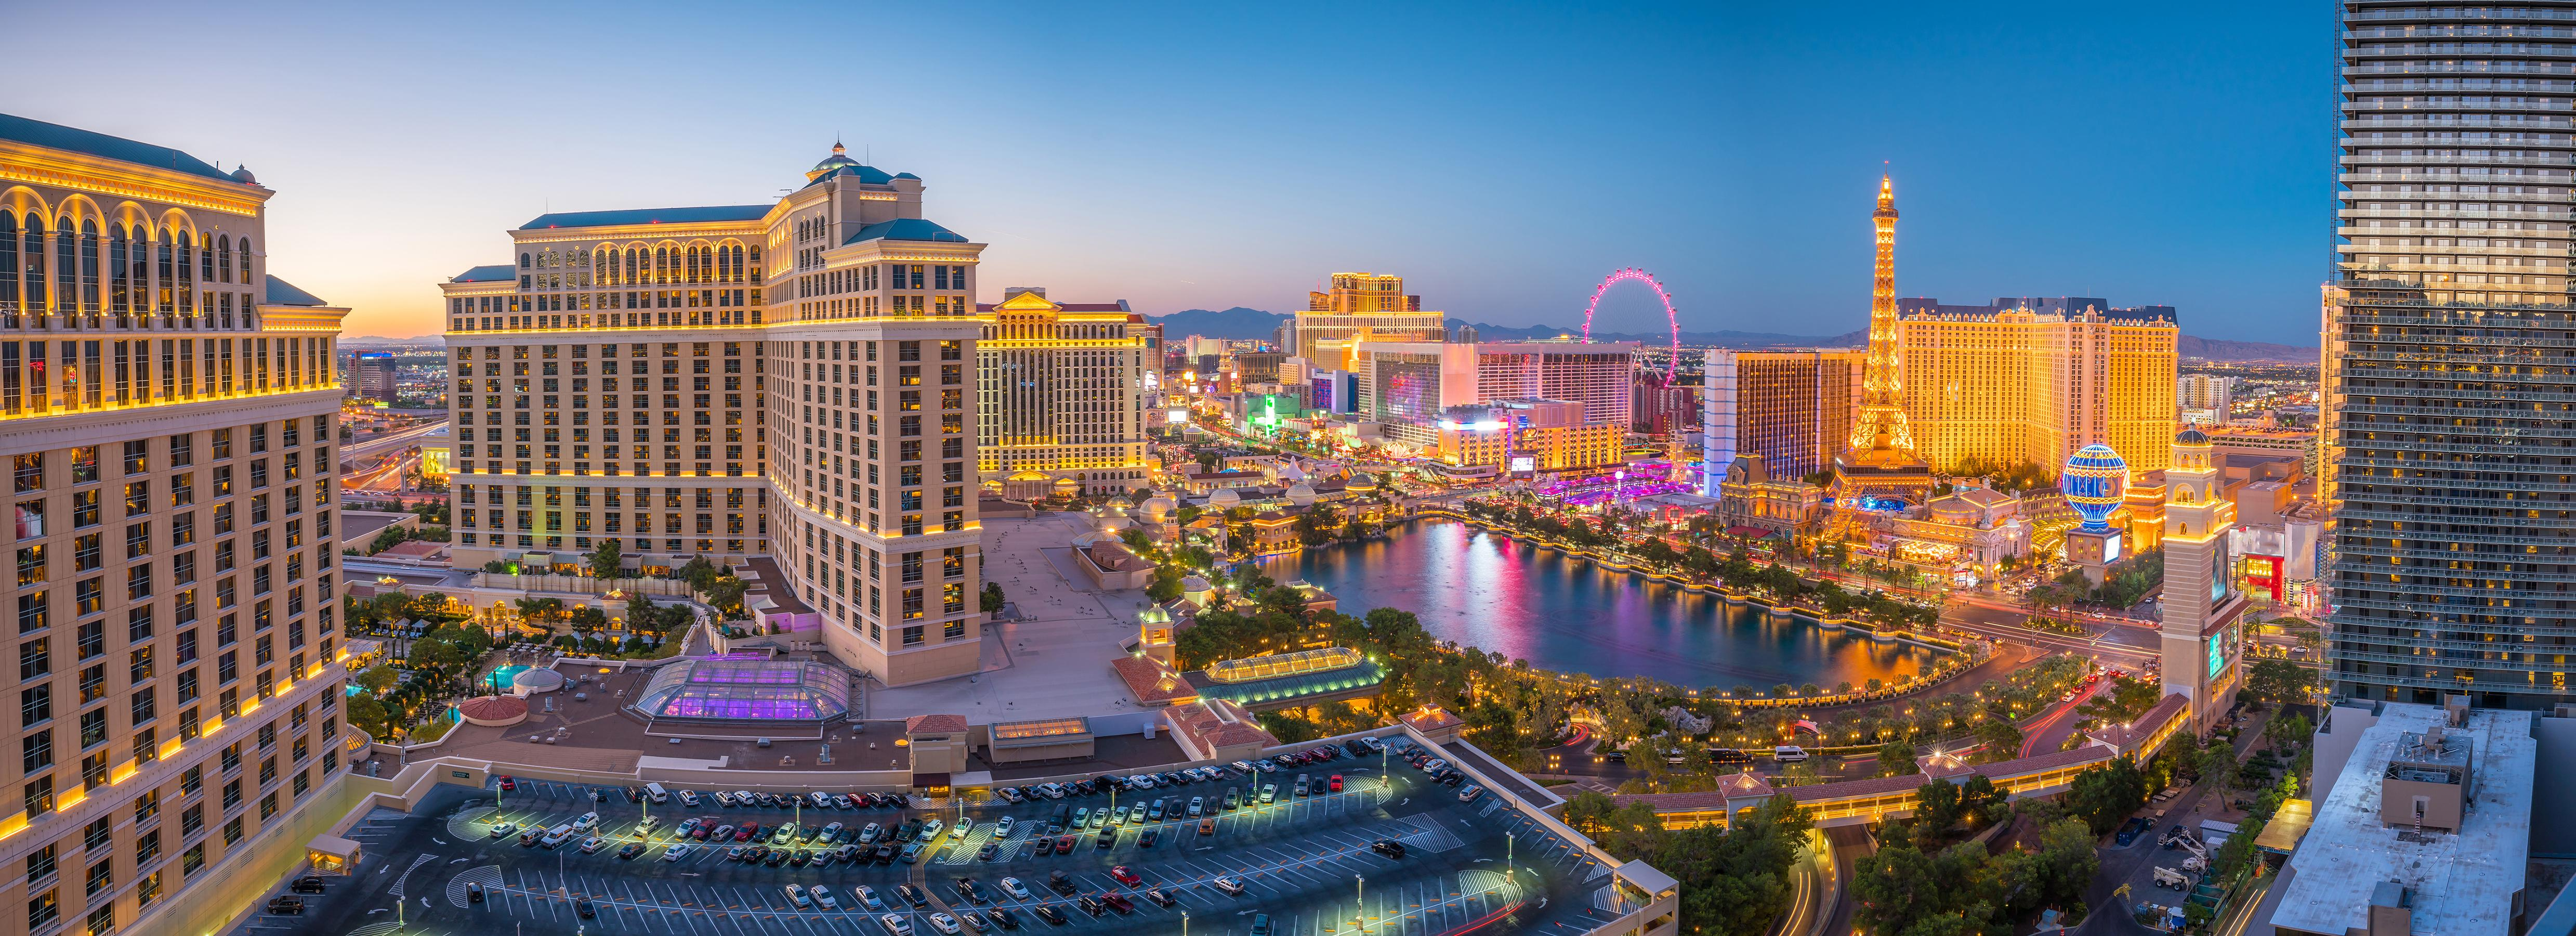 las vegas vacation packages from c 327 search flight hotel on kayak rh ca kayak com